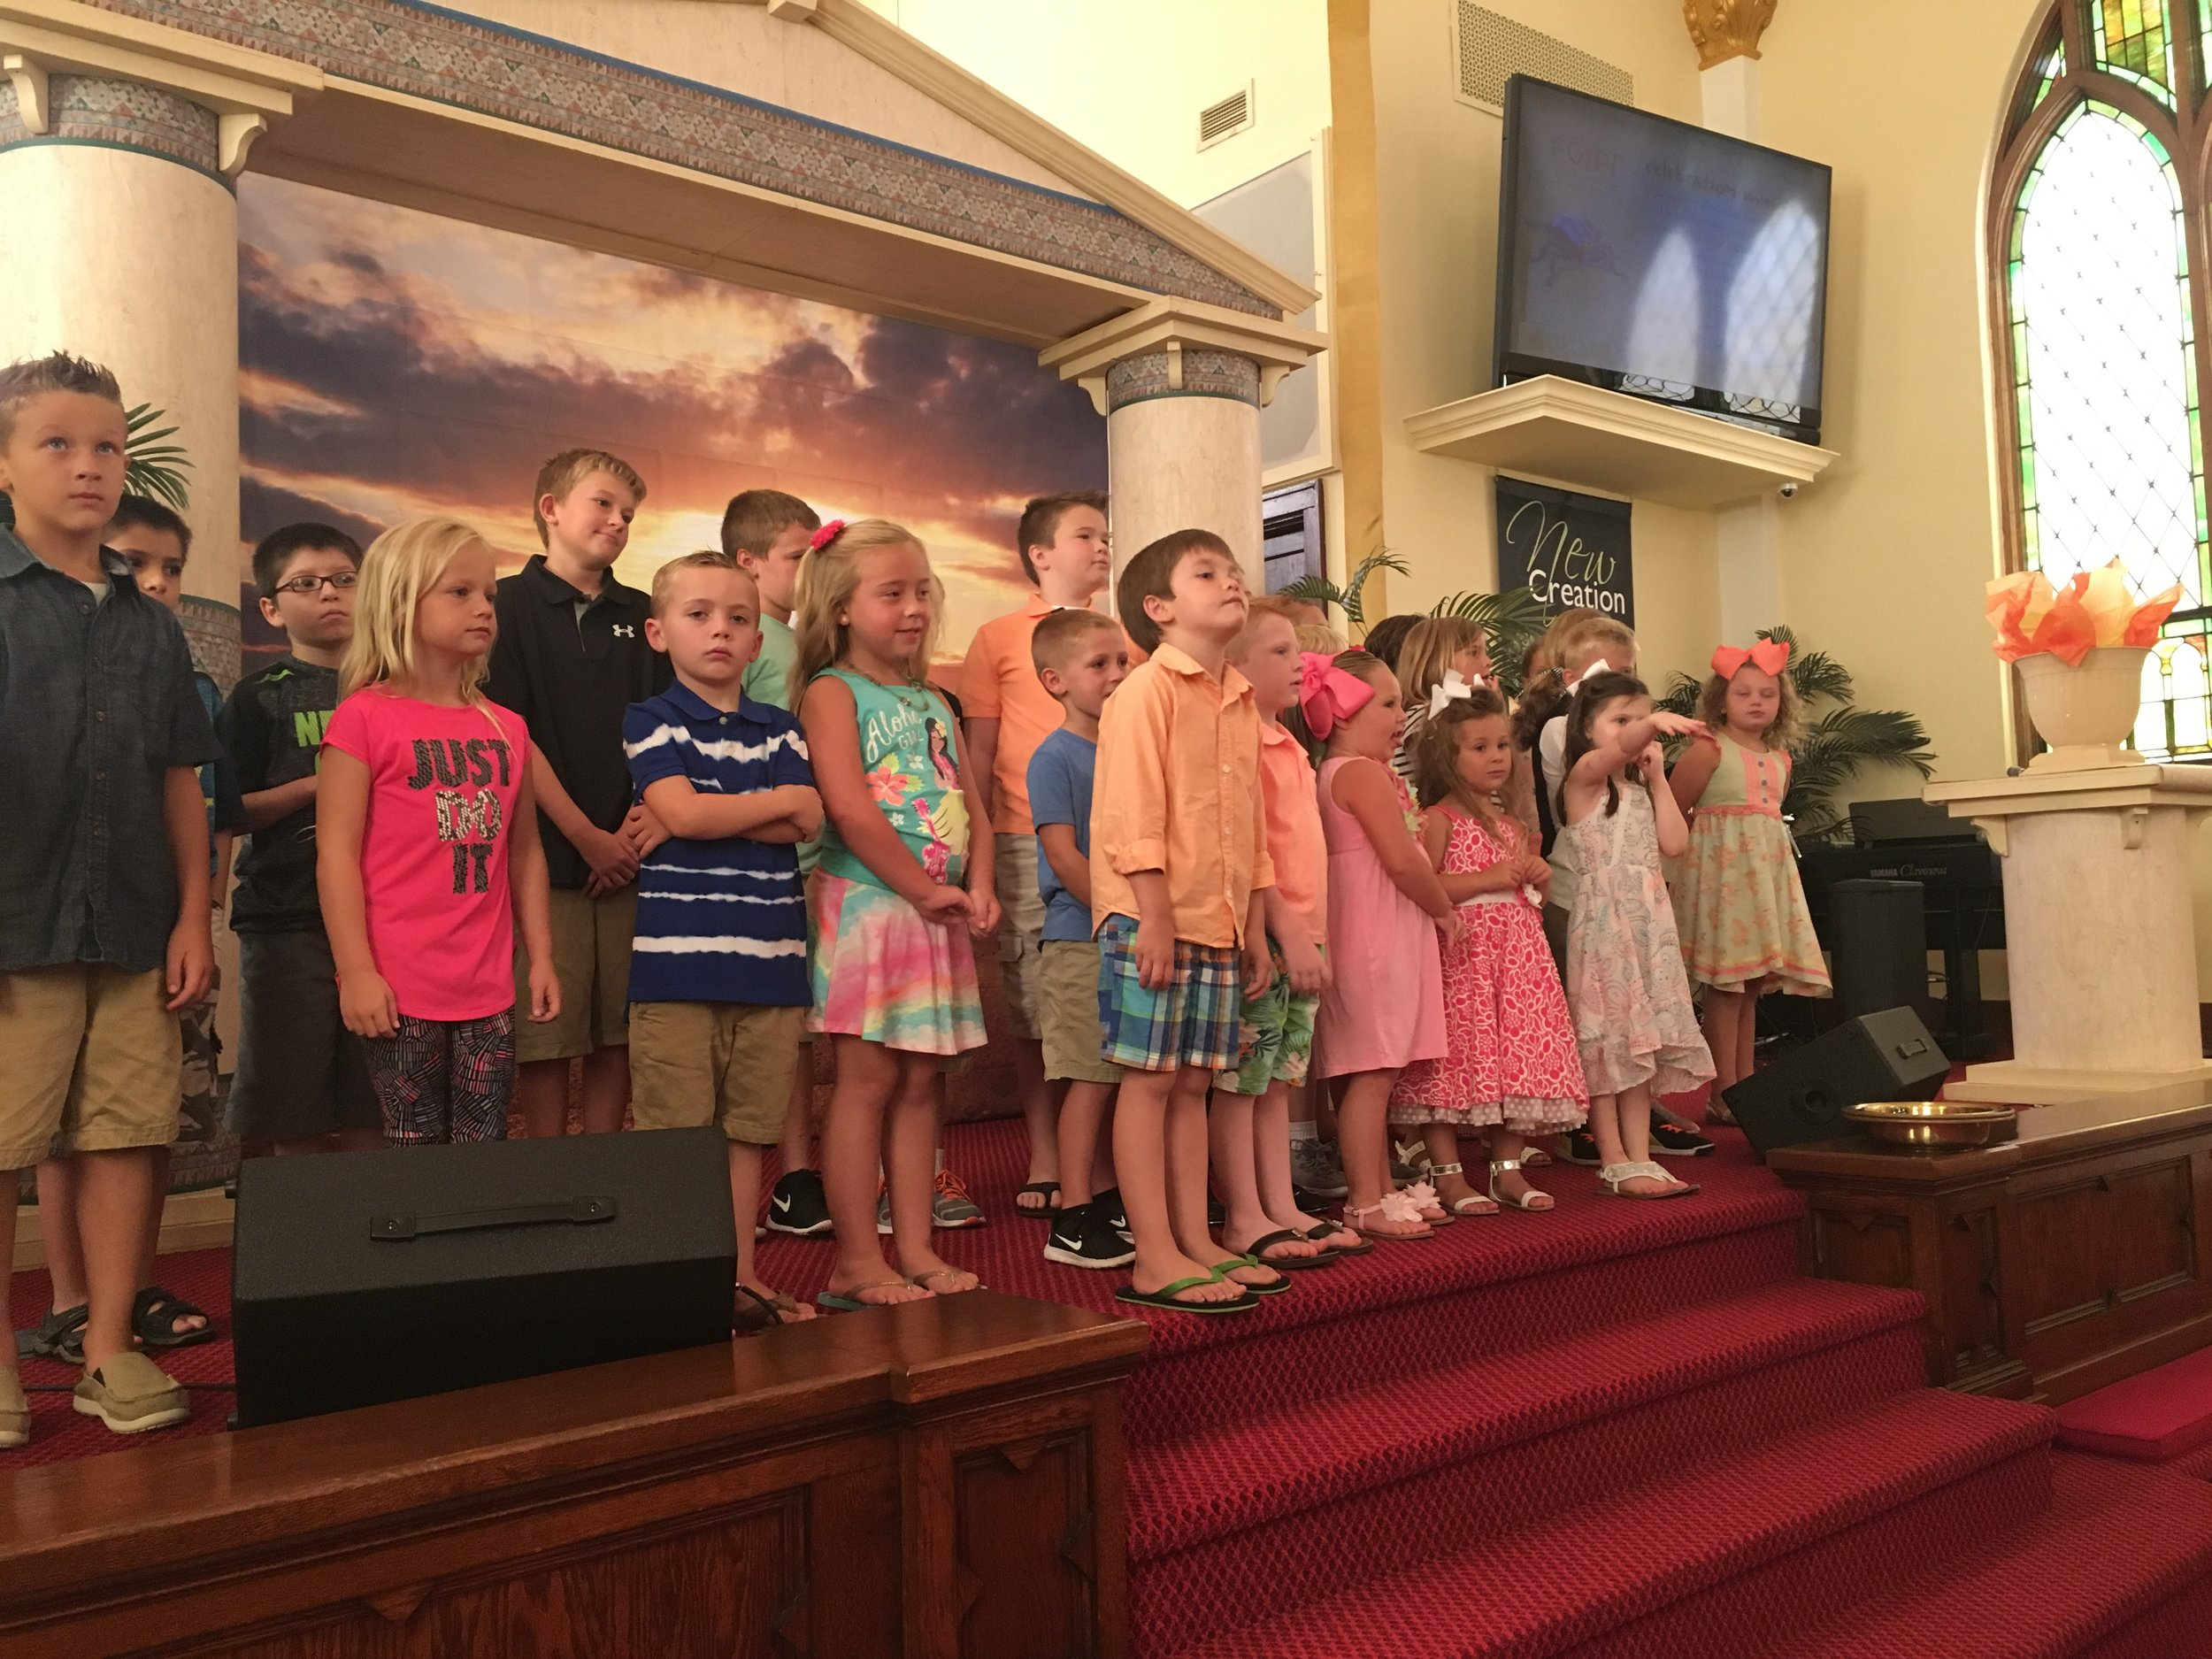 Vacation Bible School - In 2018, Vacation Bible School occurred July 30 through August 3.In 2019, the dates will be July 29 through August 2. Times will be 6:00-8:30p